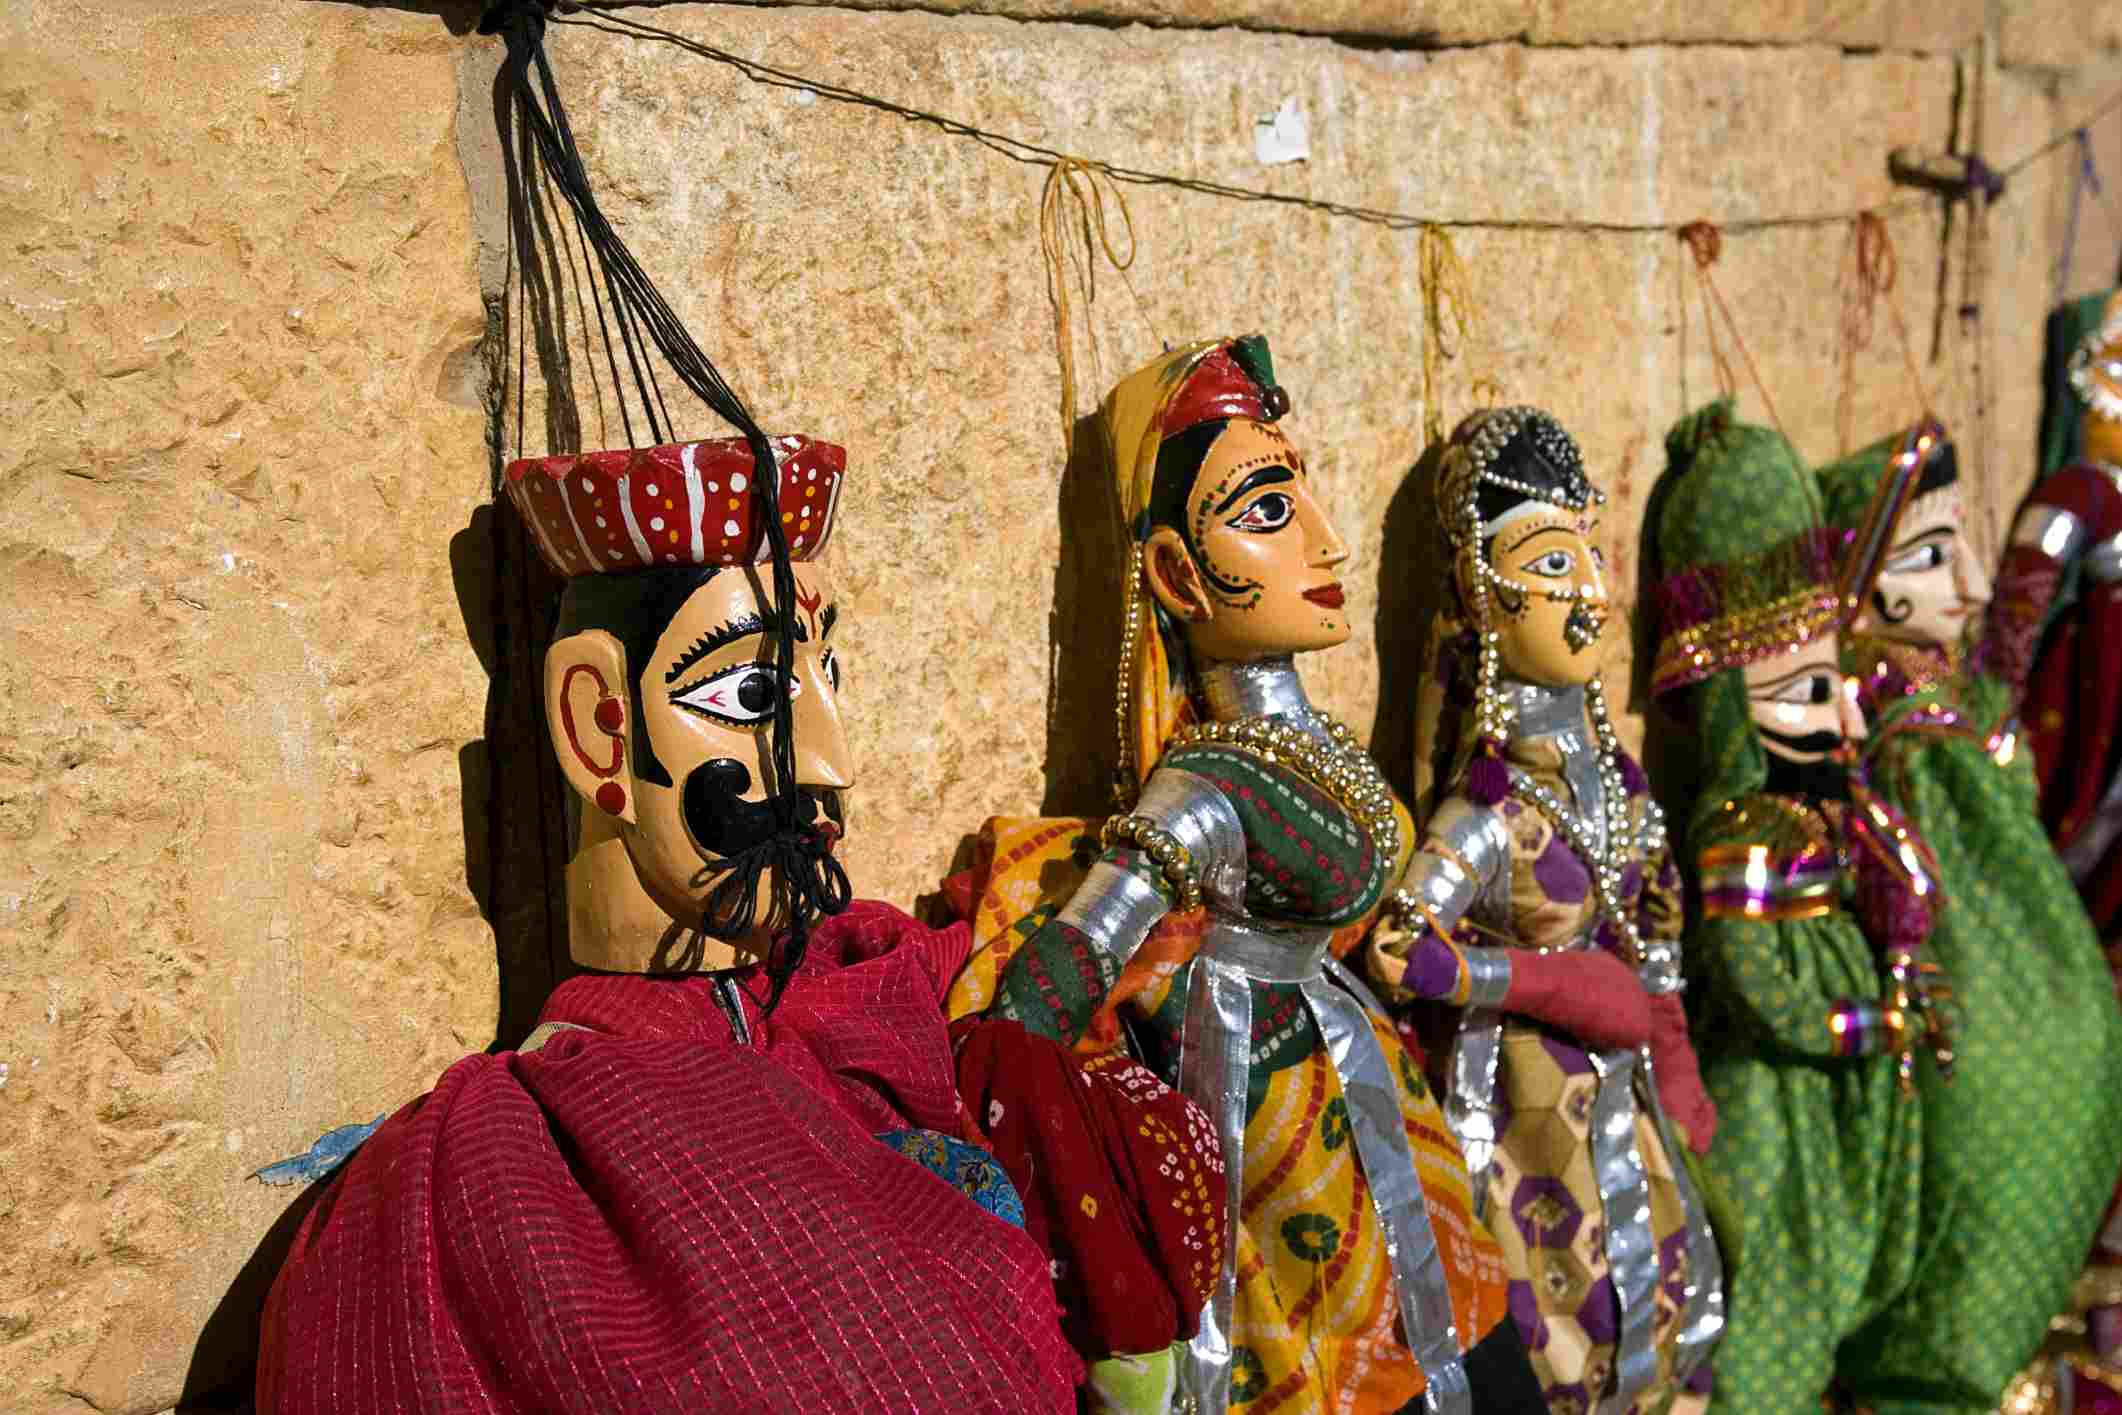 Rajasthan puppets in Jaisalmer, India